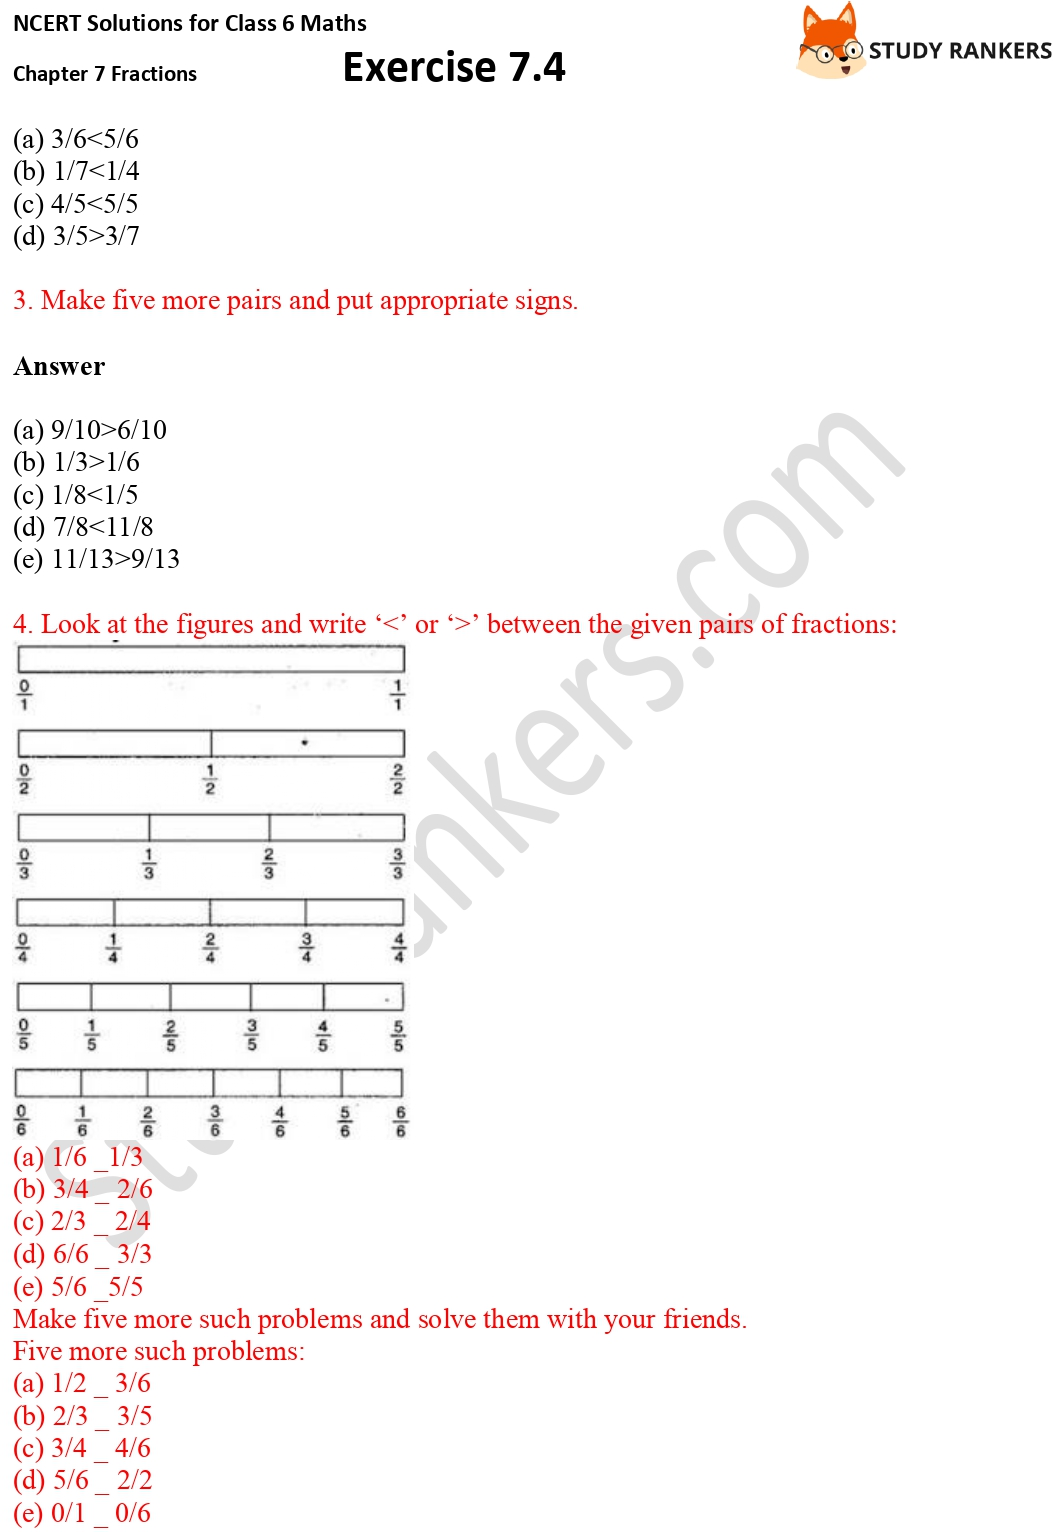 NCERT Solutions for Class 6 Maths Chapter 7 Fractions Exercise 7.4 Part 2